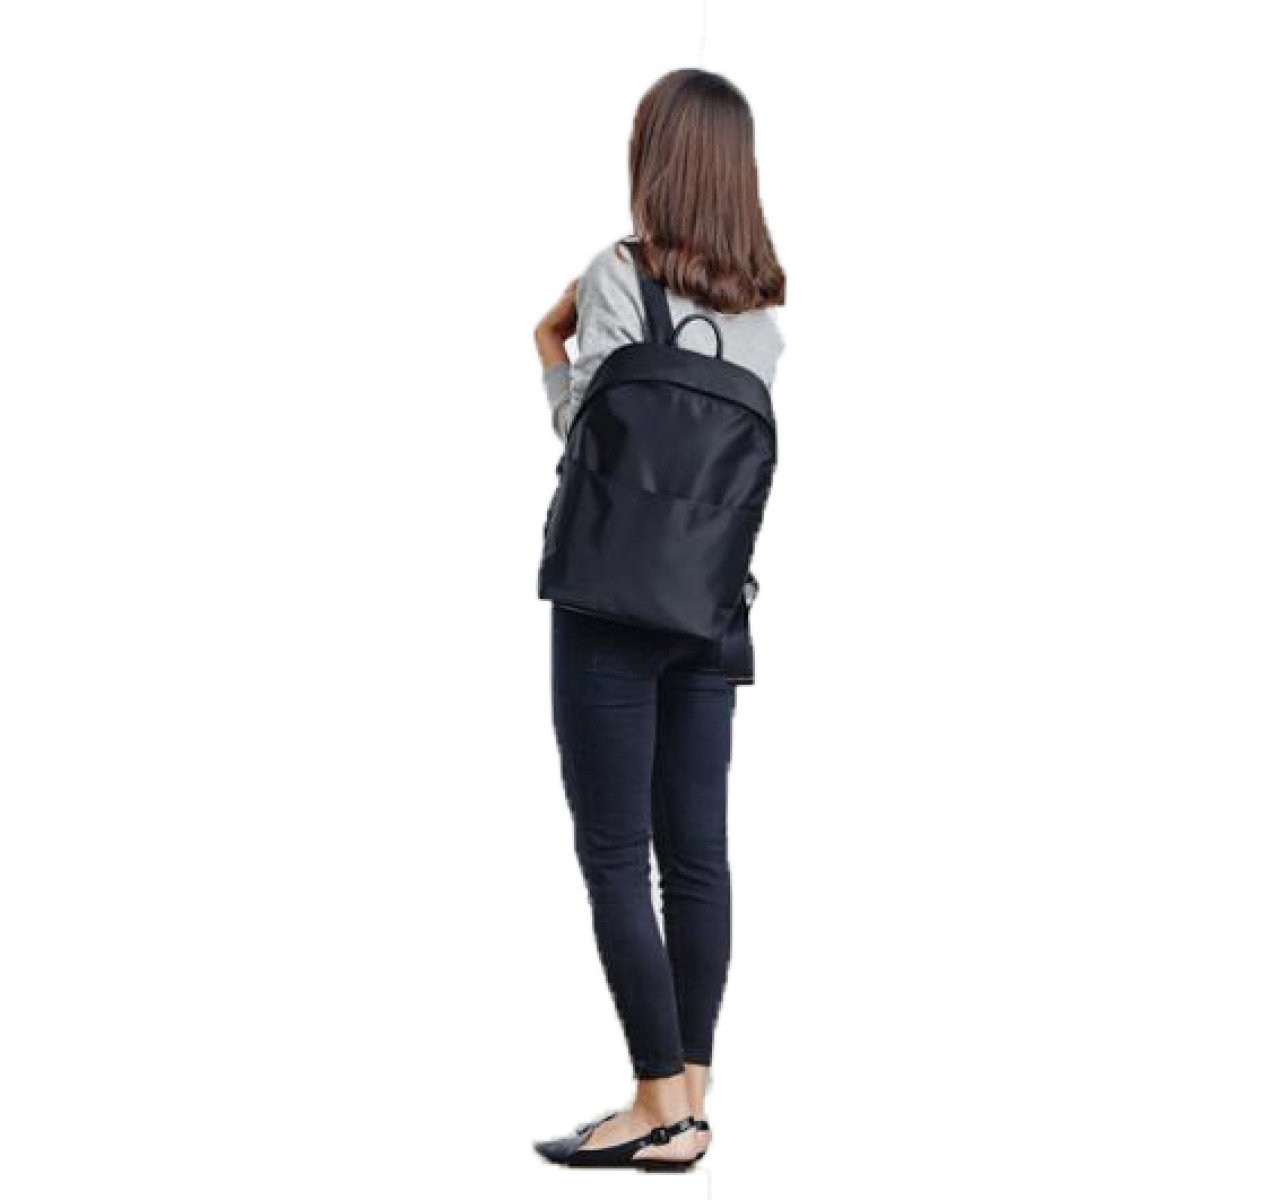 Black OneSize Girl 13 Inches Computer Backpack Waterproof Fashion Backpack Simplicity Temperament Nylon Backpack Leisure Travel College Wind Outdoor Shopping Dating Pack,BlackOneSize